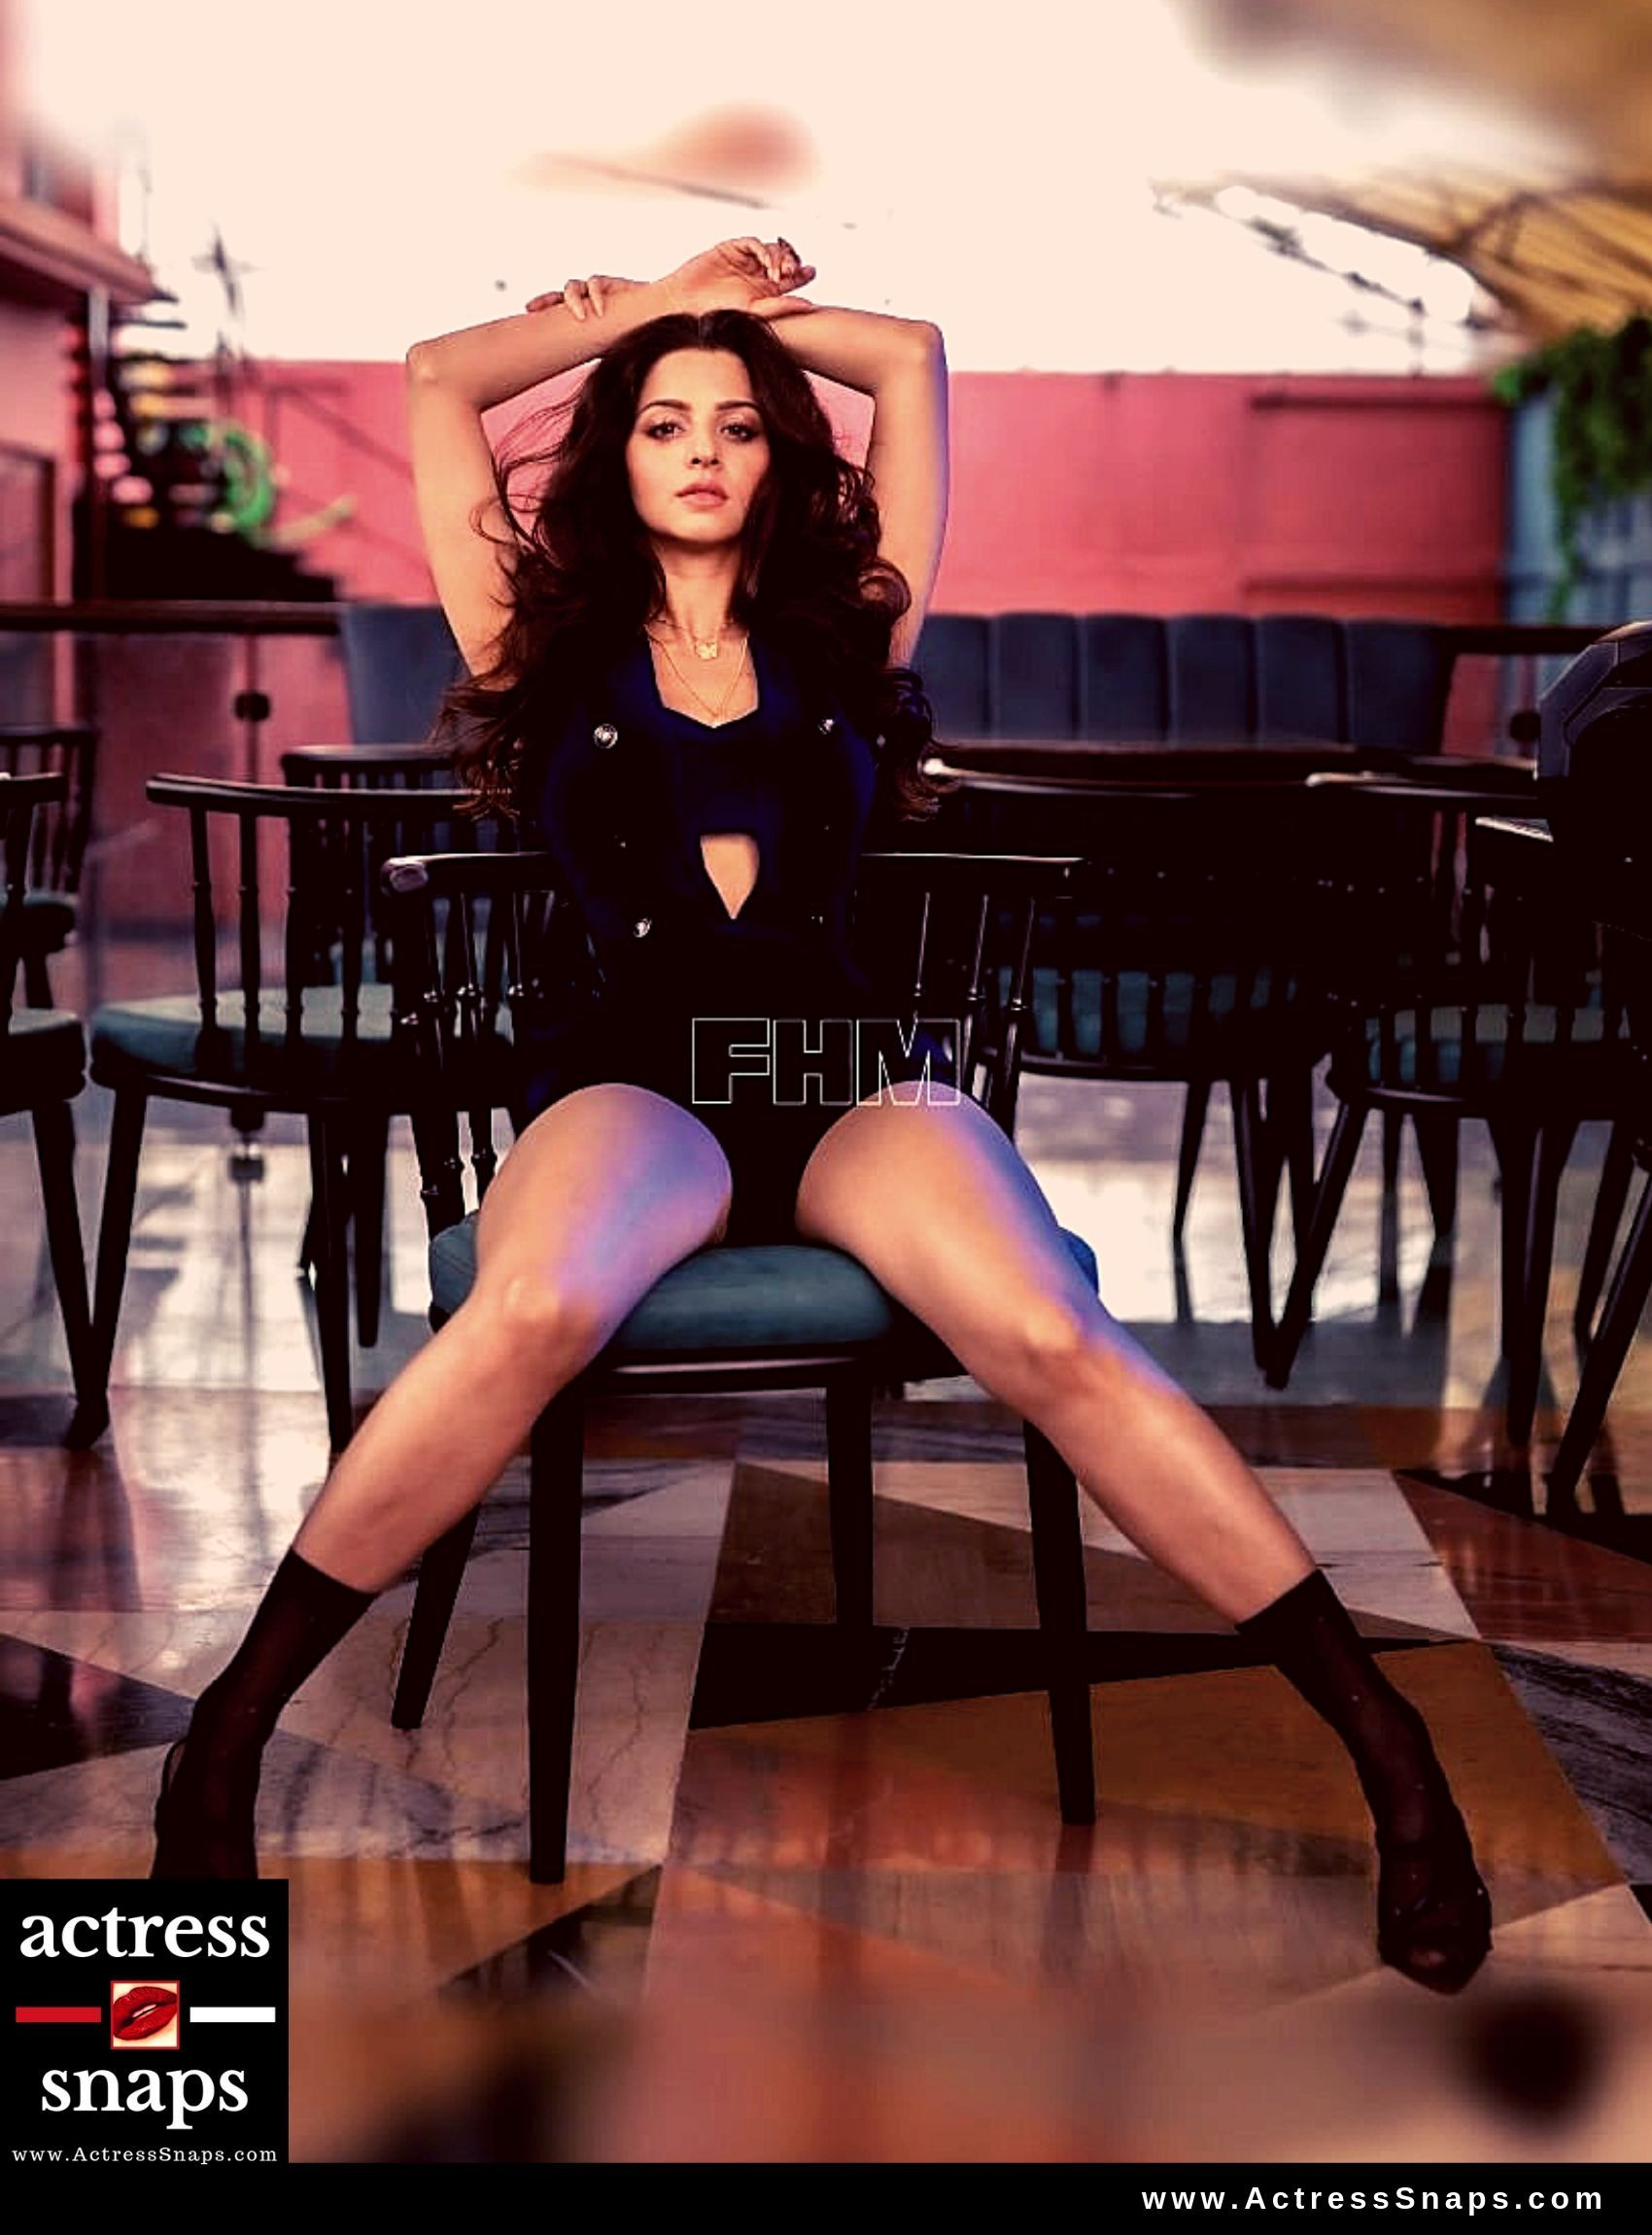 Vedhika Kumar - FHM India Scans - Sexy Actress Pictures | Hot Actress Pictures - ActressSnaps.com